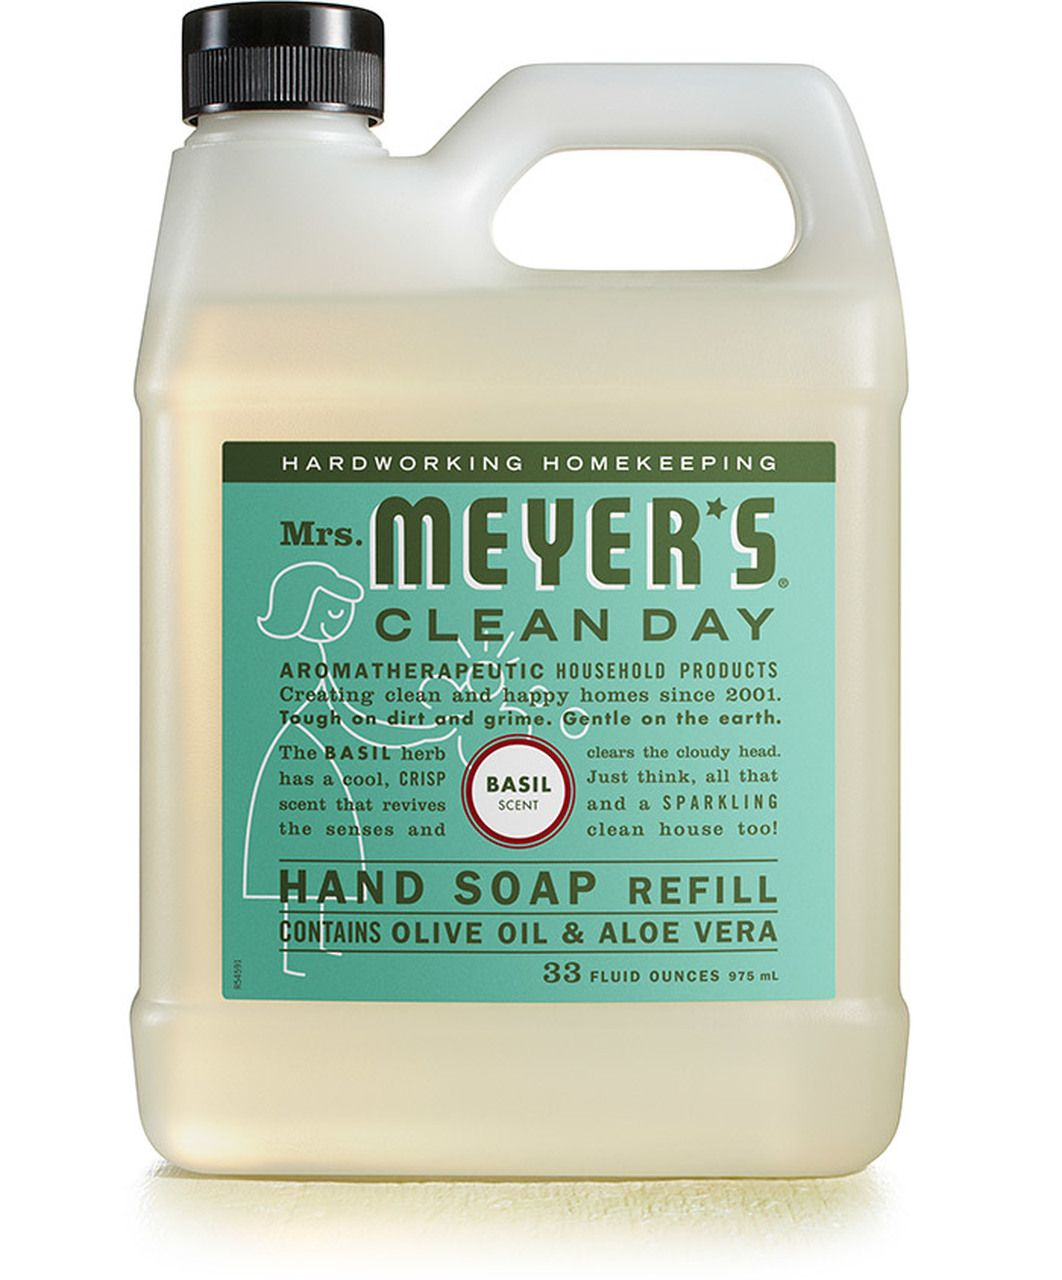 Basil Liquid Hand Soap Refill Cleaning Day Liquid Hand Soap Refill